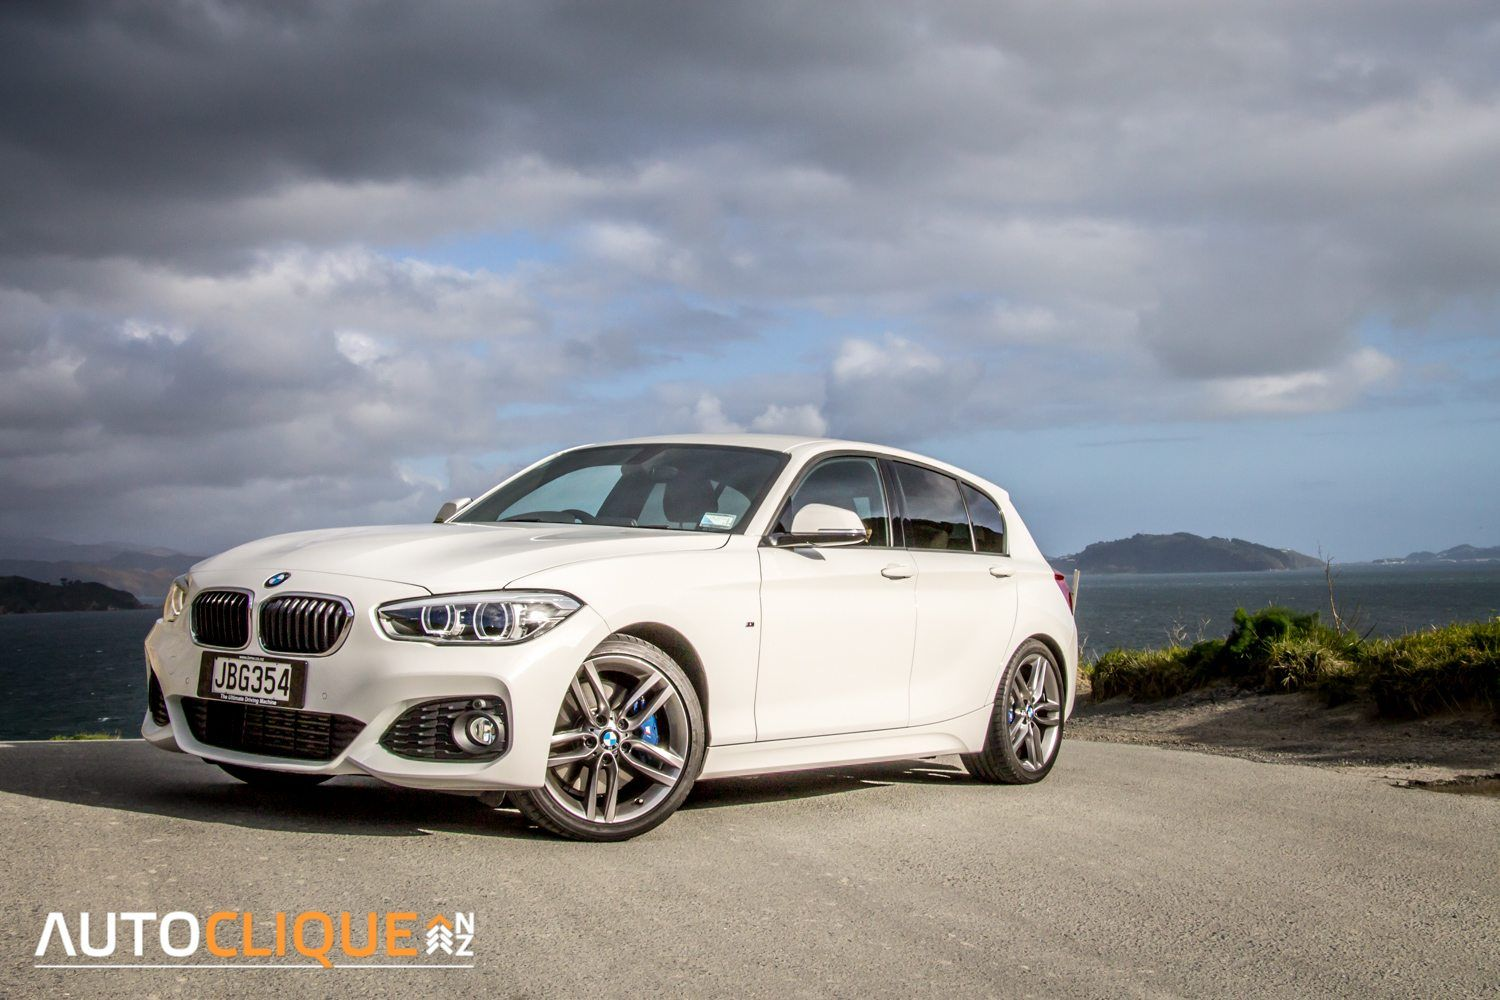 2015 Bmw 125i Msport Car Review Family Sports Car Coches